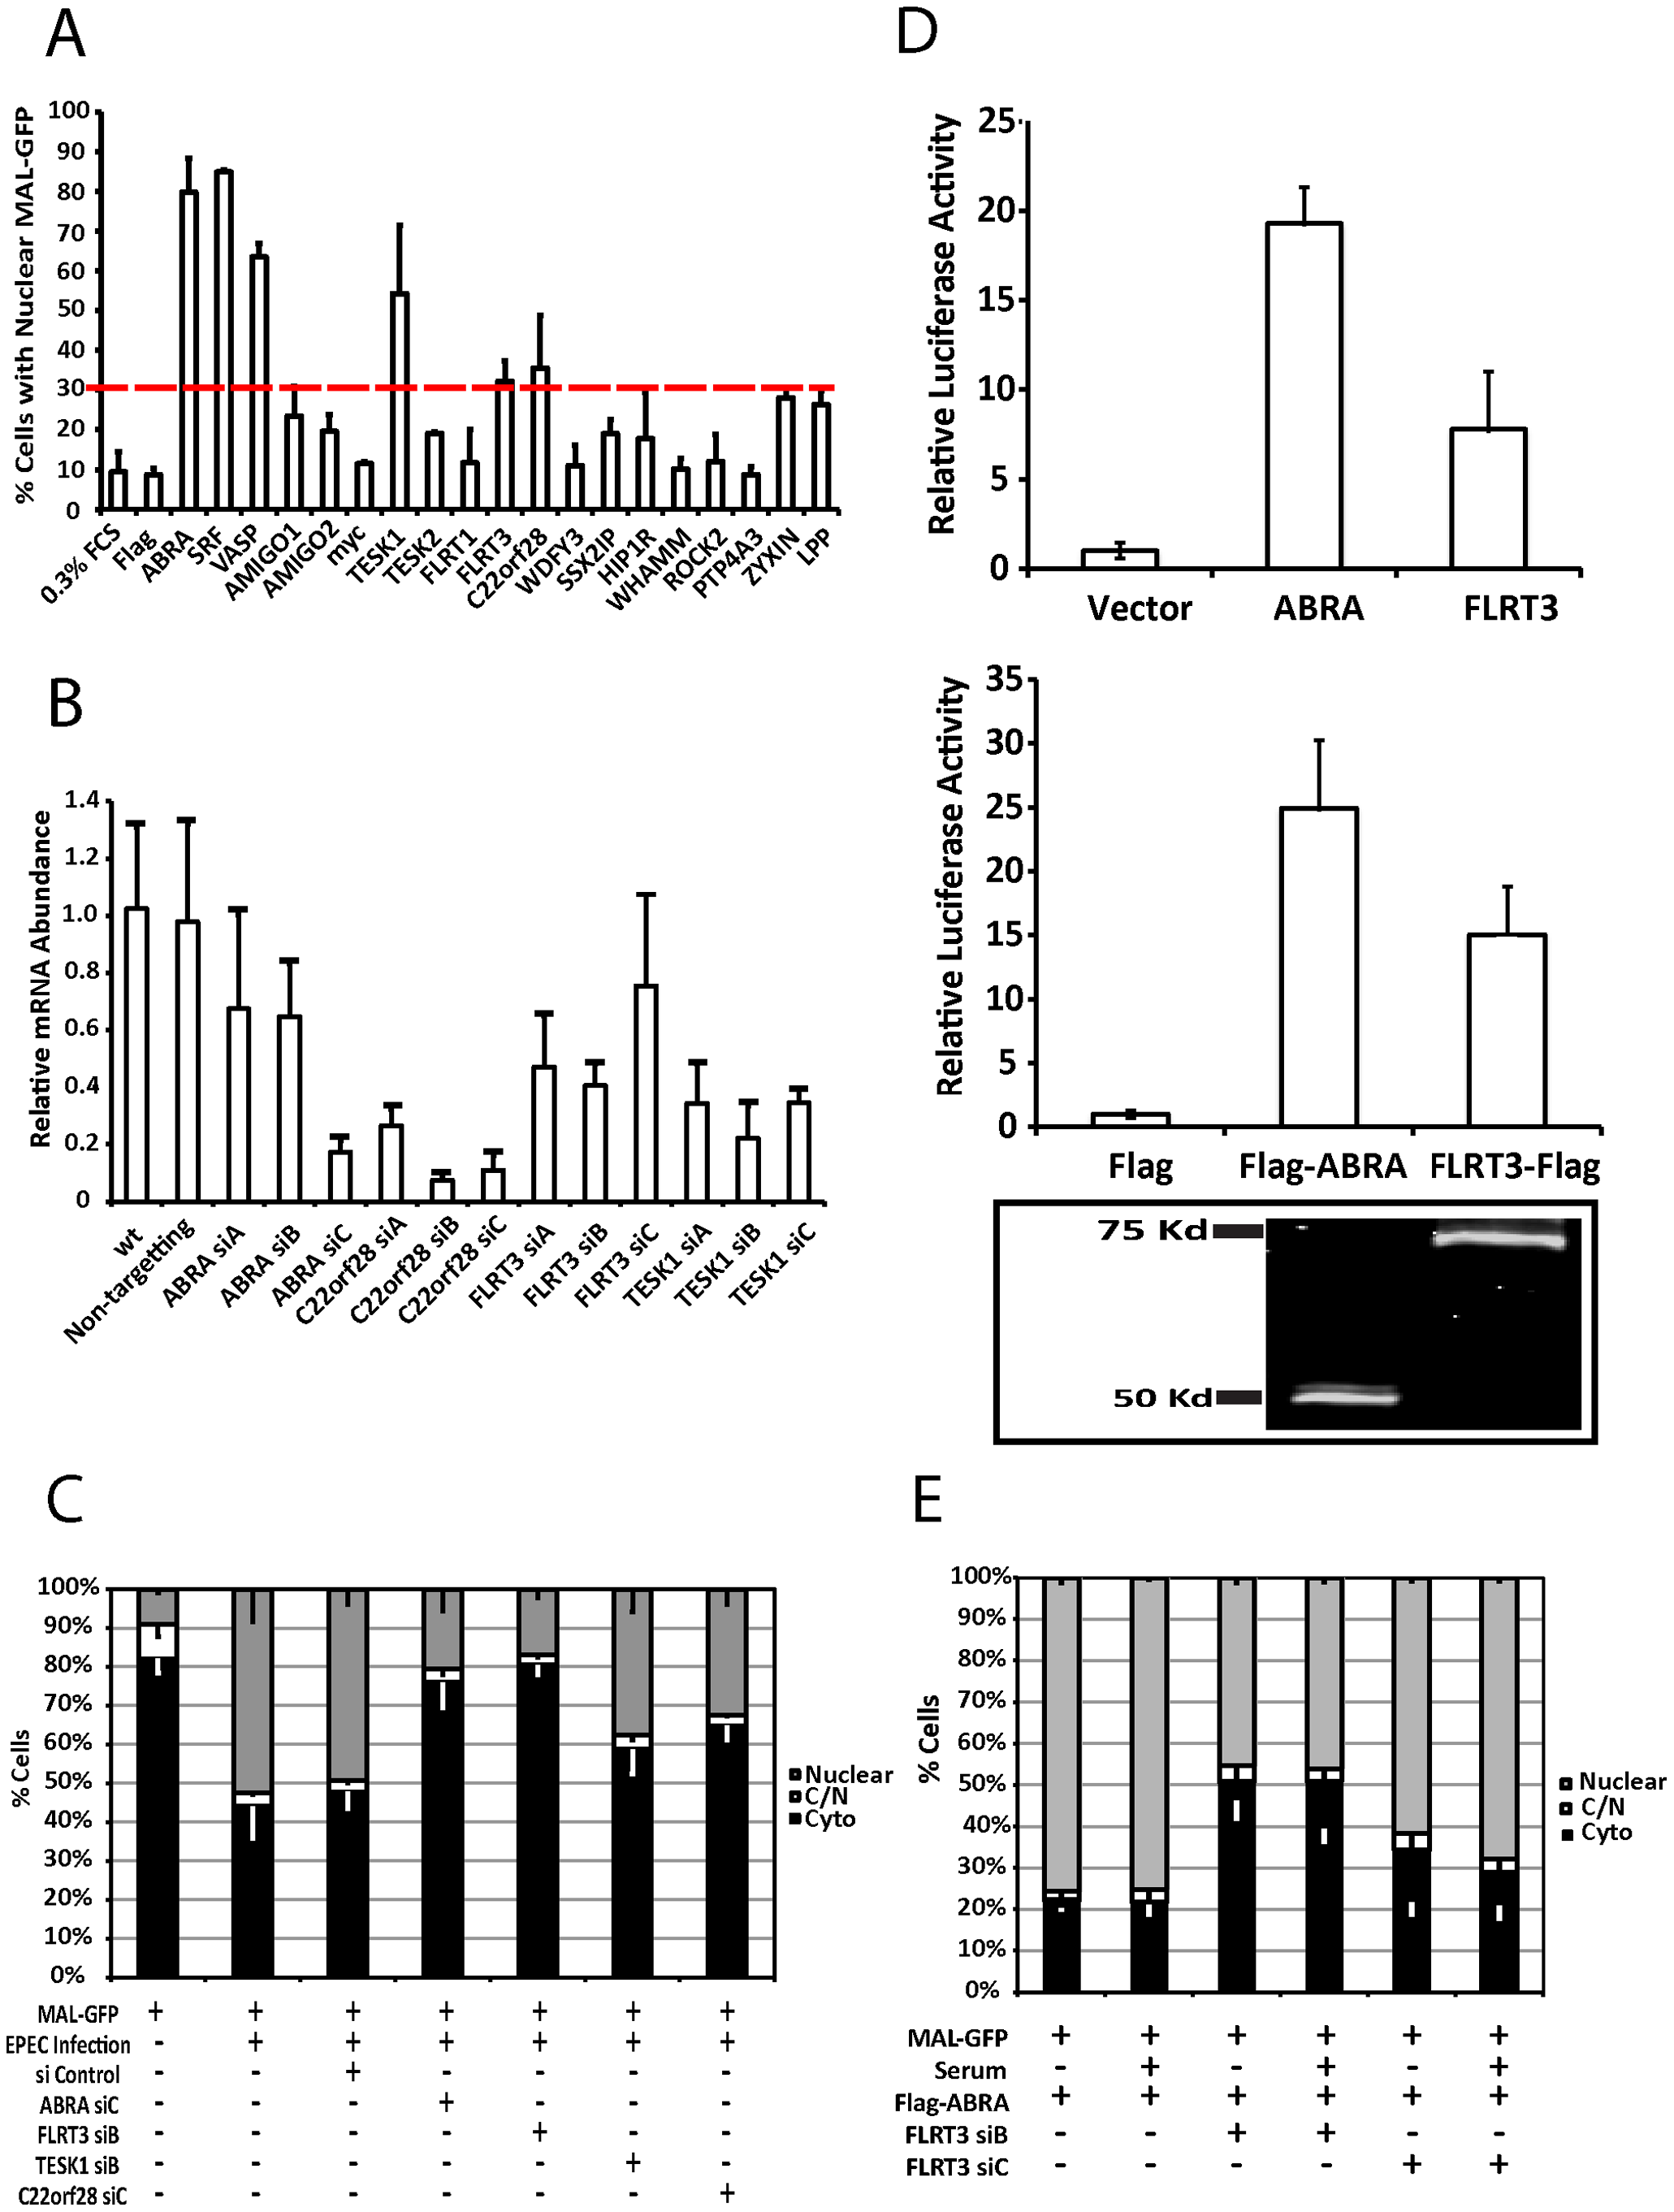 ABRA and FLRT3 are SRF activators required for EPEC-induced MAL-GFP translocation.